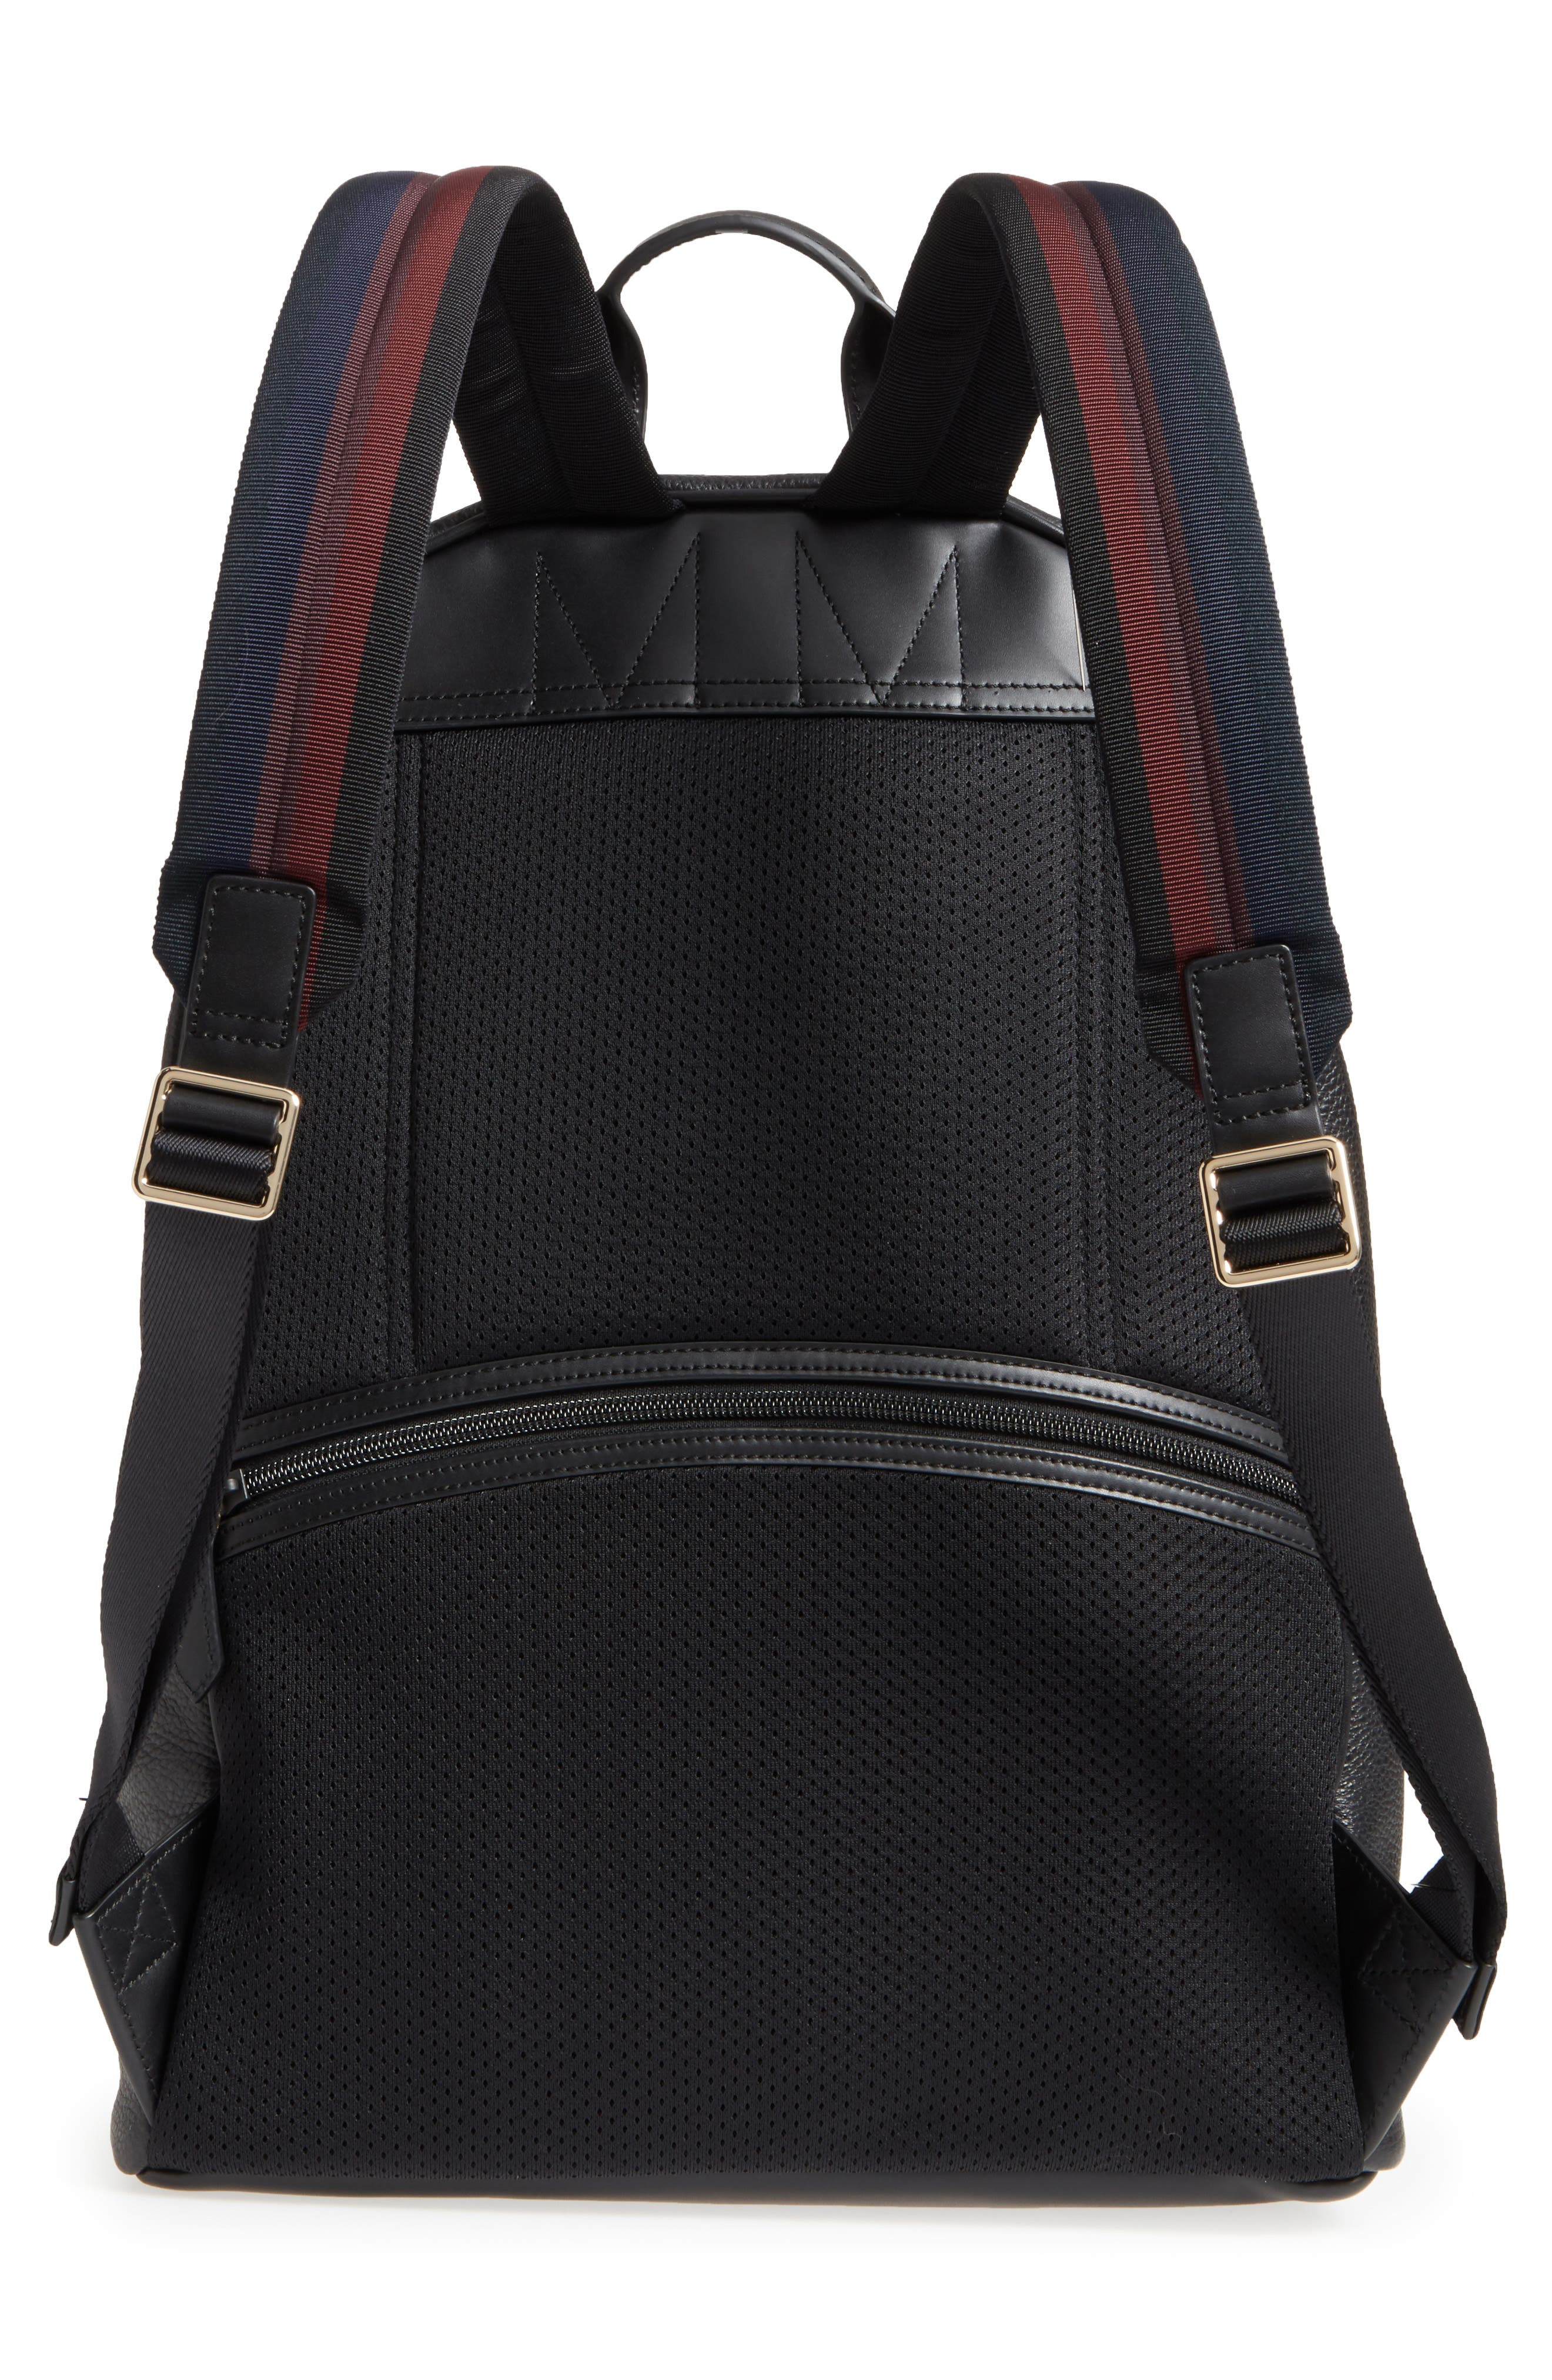 City Webbing Leather Backpack,                             Alternate thumbnail 3, color,                             001